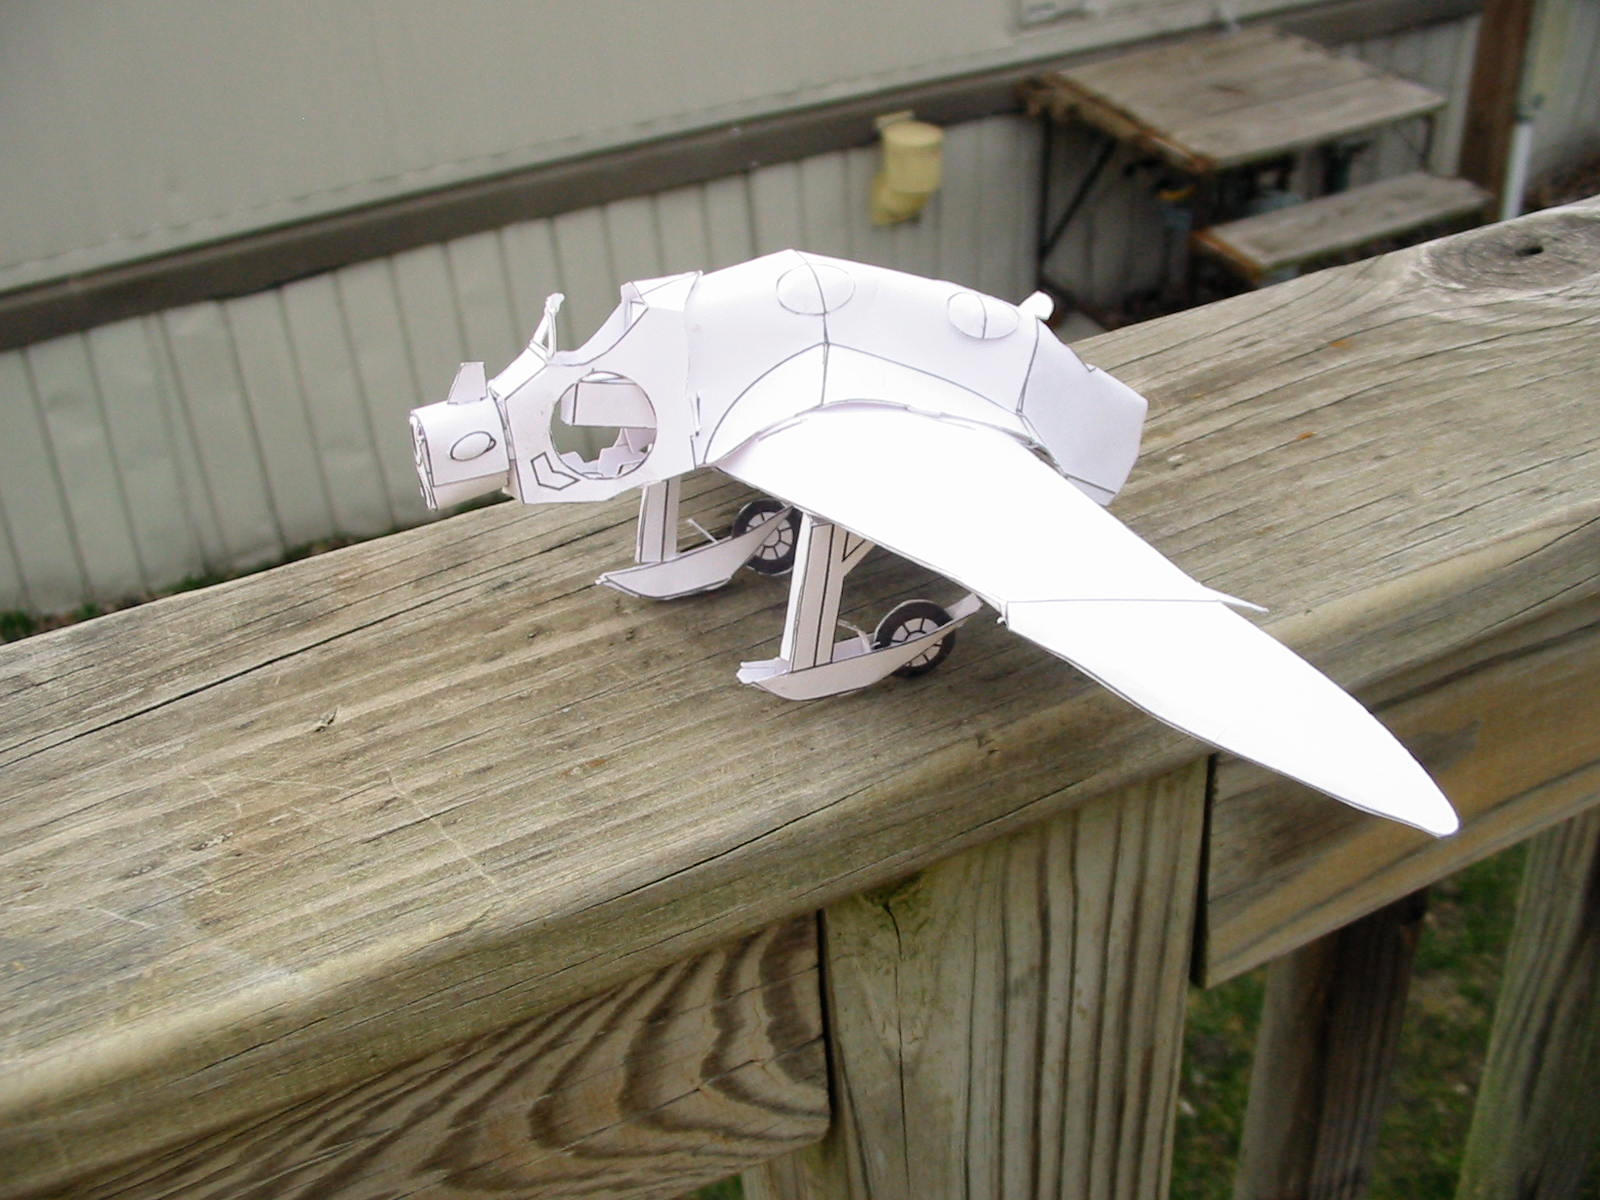 Valley of the Wind Gunship reverse engineered by ARMORMAN